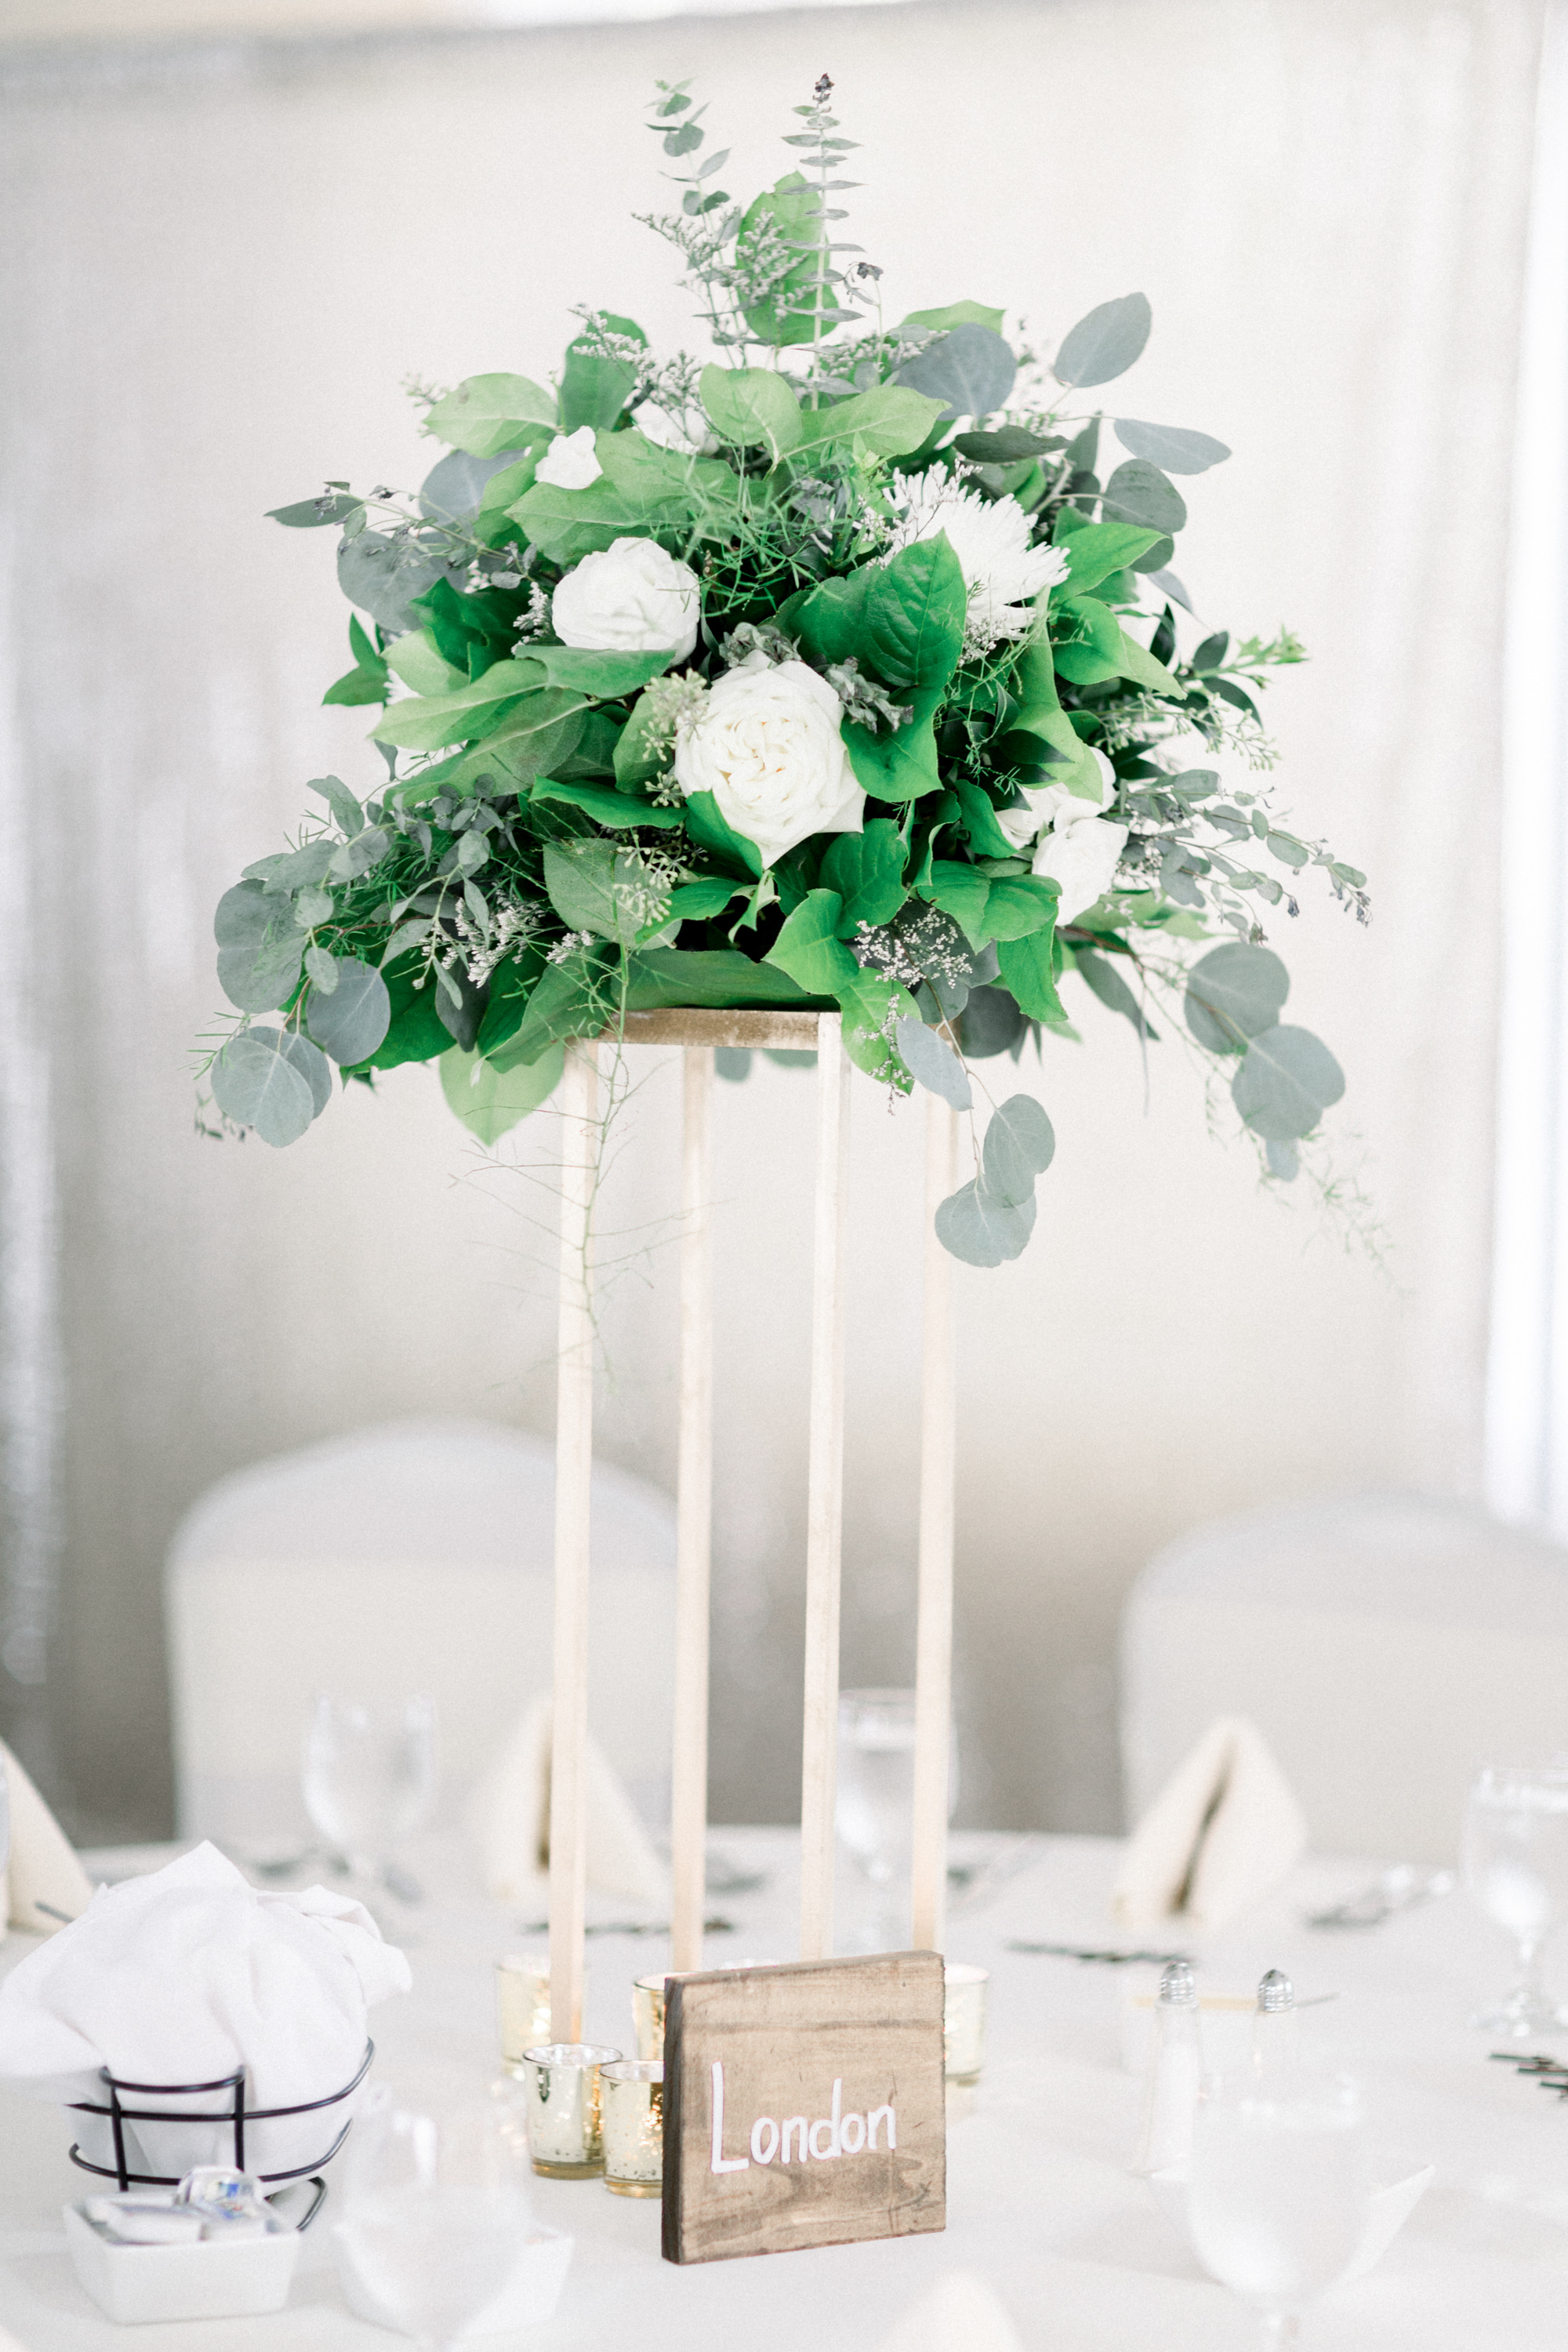 Greenery, eucalyptus, and white roses tall wedding centerpieces for Pittsburgh wedding planned by Exhale Events. Find more wedding inspiration at exhale-events.com!